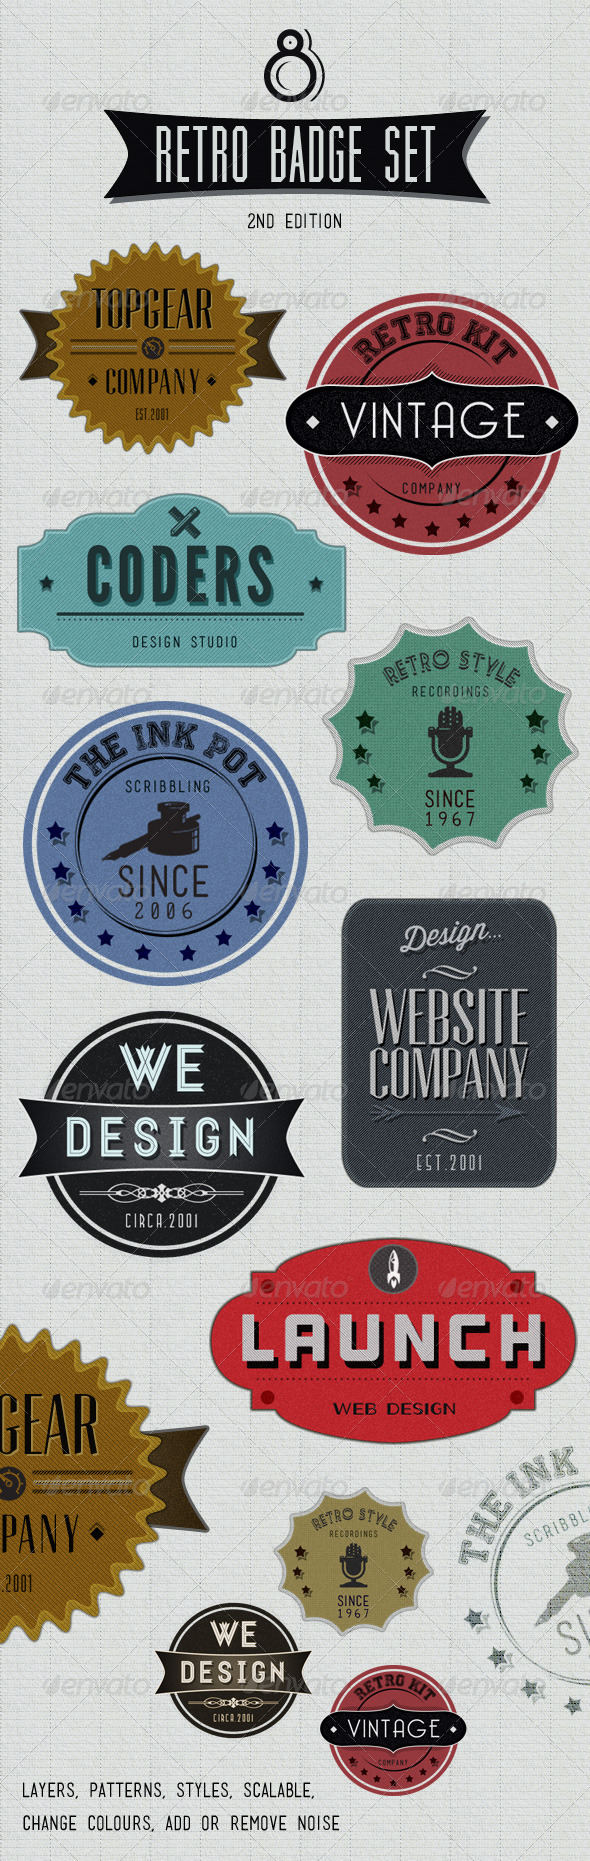 Retro Badges - Faded Vintage Labels - V.2 - Badges & Stickers Web Elements